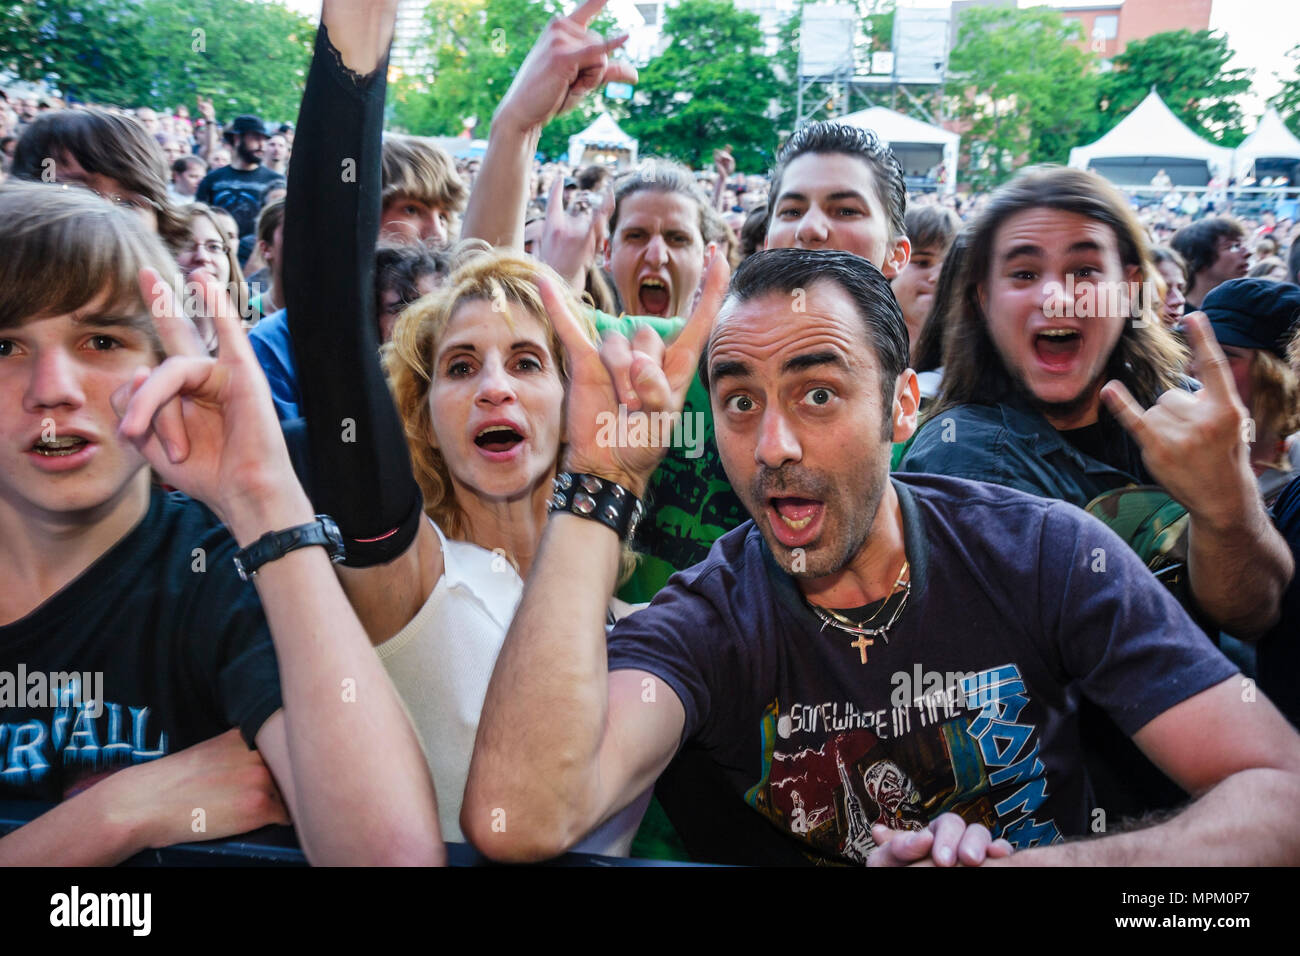 Quebec City Canada Grande Allee Le Pigeonner Park Summer Festival Forgotten Tales power heavy metal band Sonia Pineault singer concert fans family - Stock Image